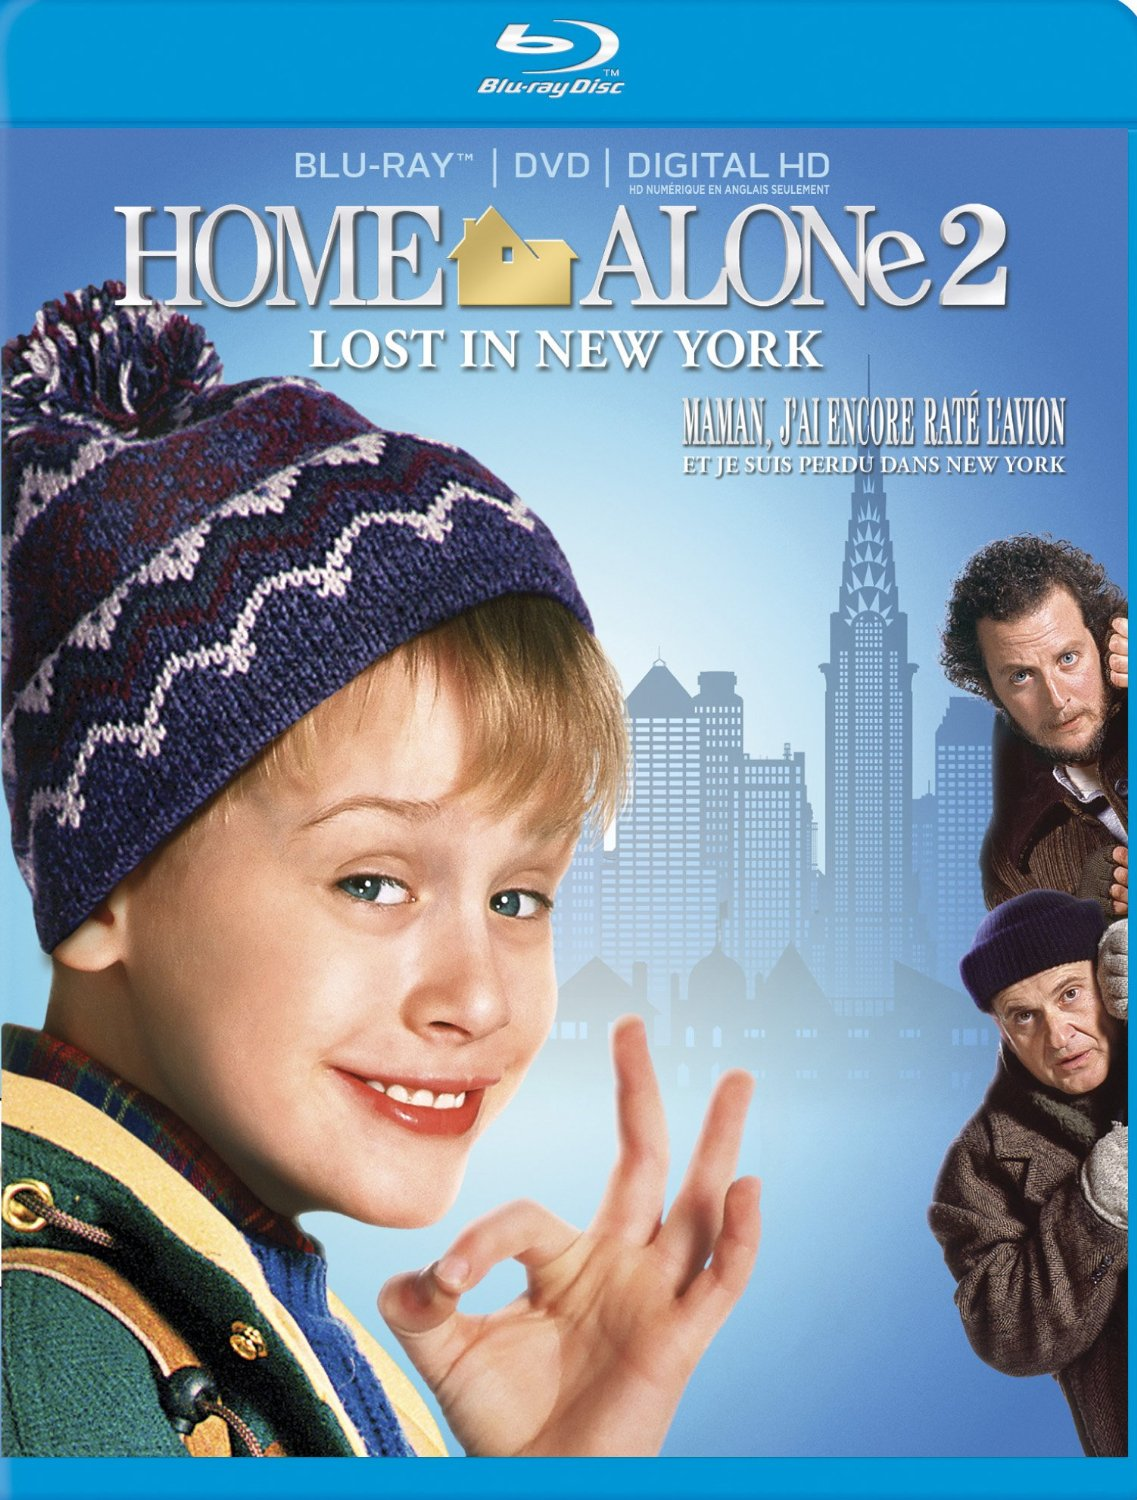 home alone 2 lost in new york blu ray dvd combo edition orcasound. Black Bedroom Furniture Sets. Home Design Ideas